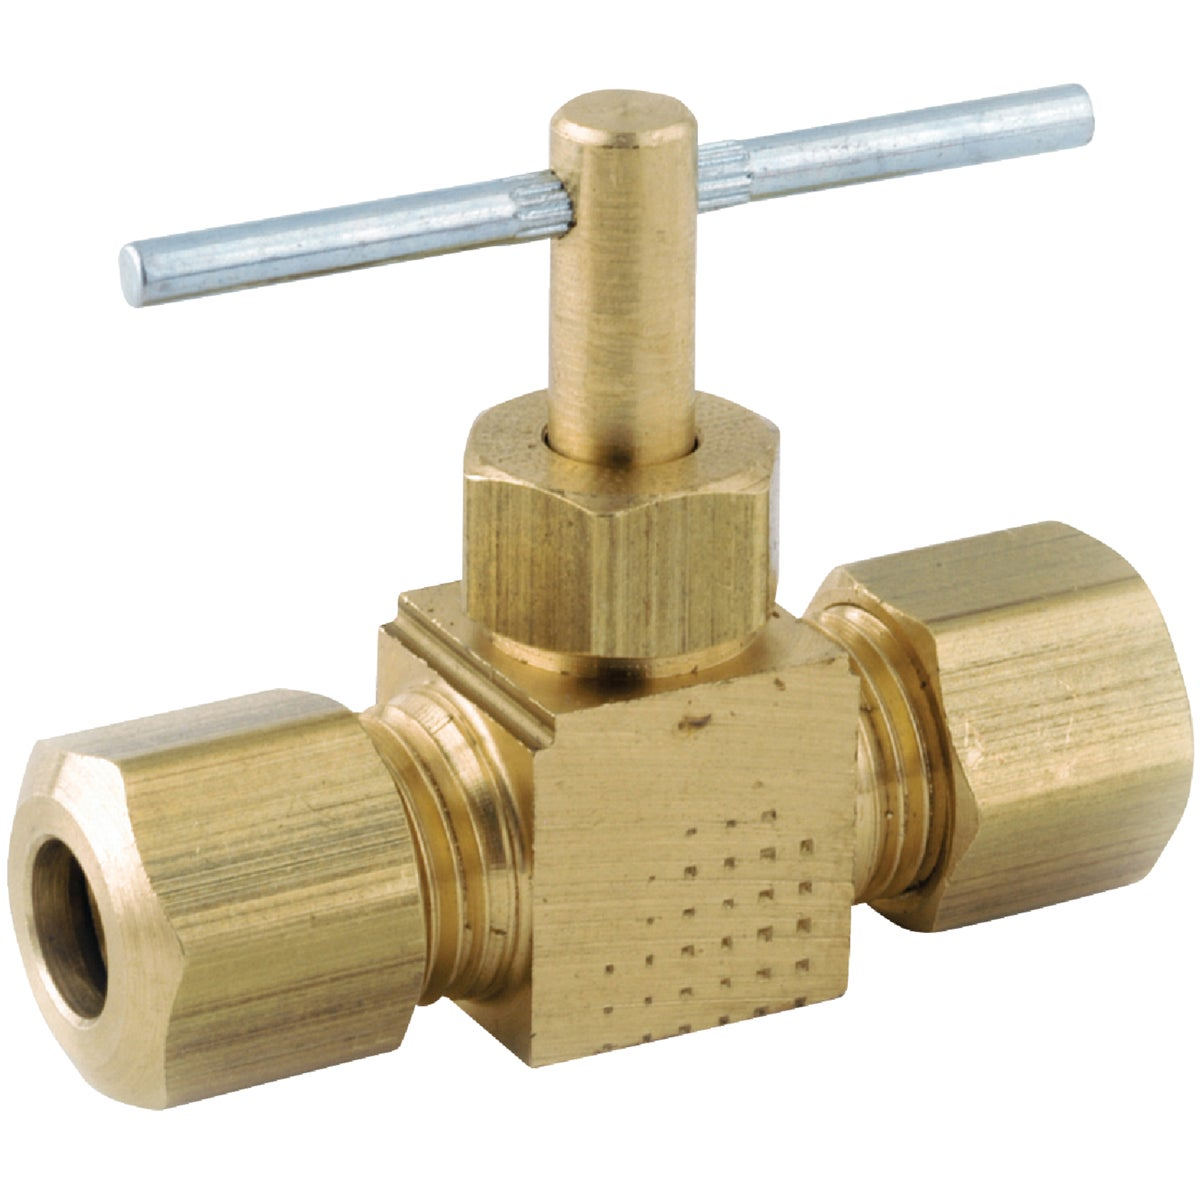 1/4X1/4 NEEDLE VALVE - 759106-04 by Anderson Metals Corp